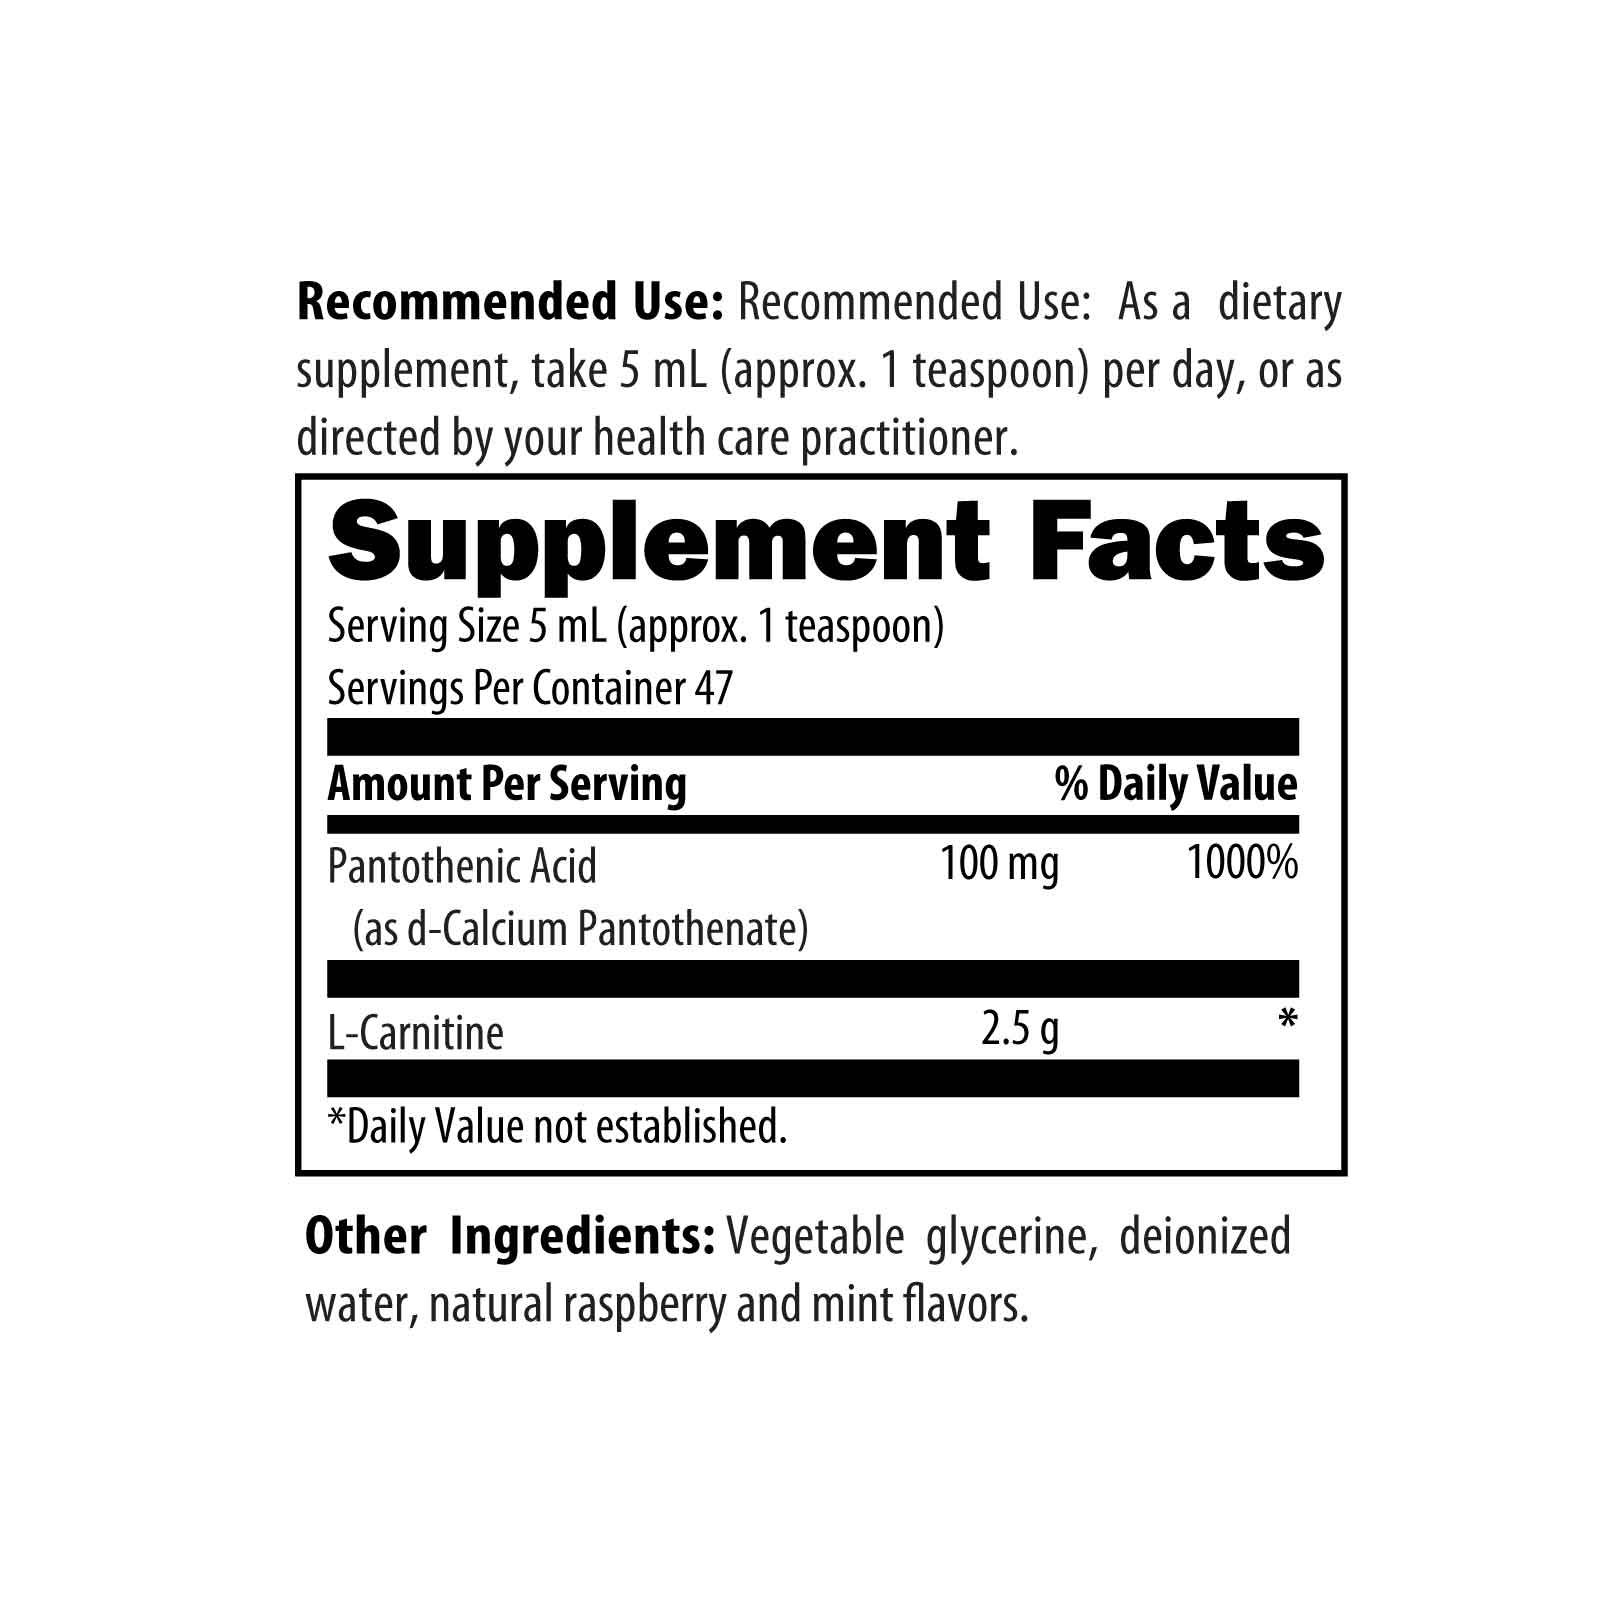 CarniClear Supersaturated Carnitine Liquid 8 fl oz (237 ml) Designs for Health Ingredients